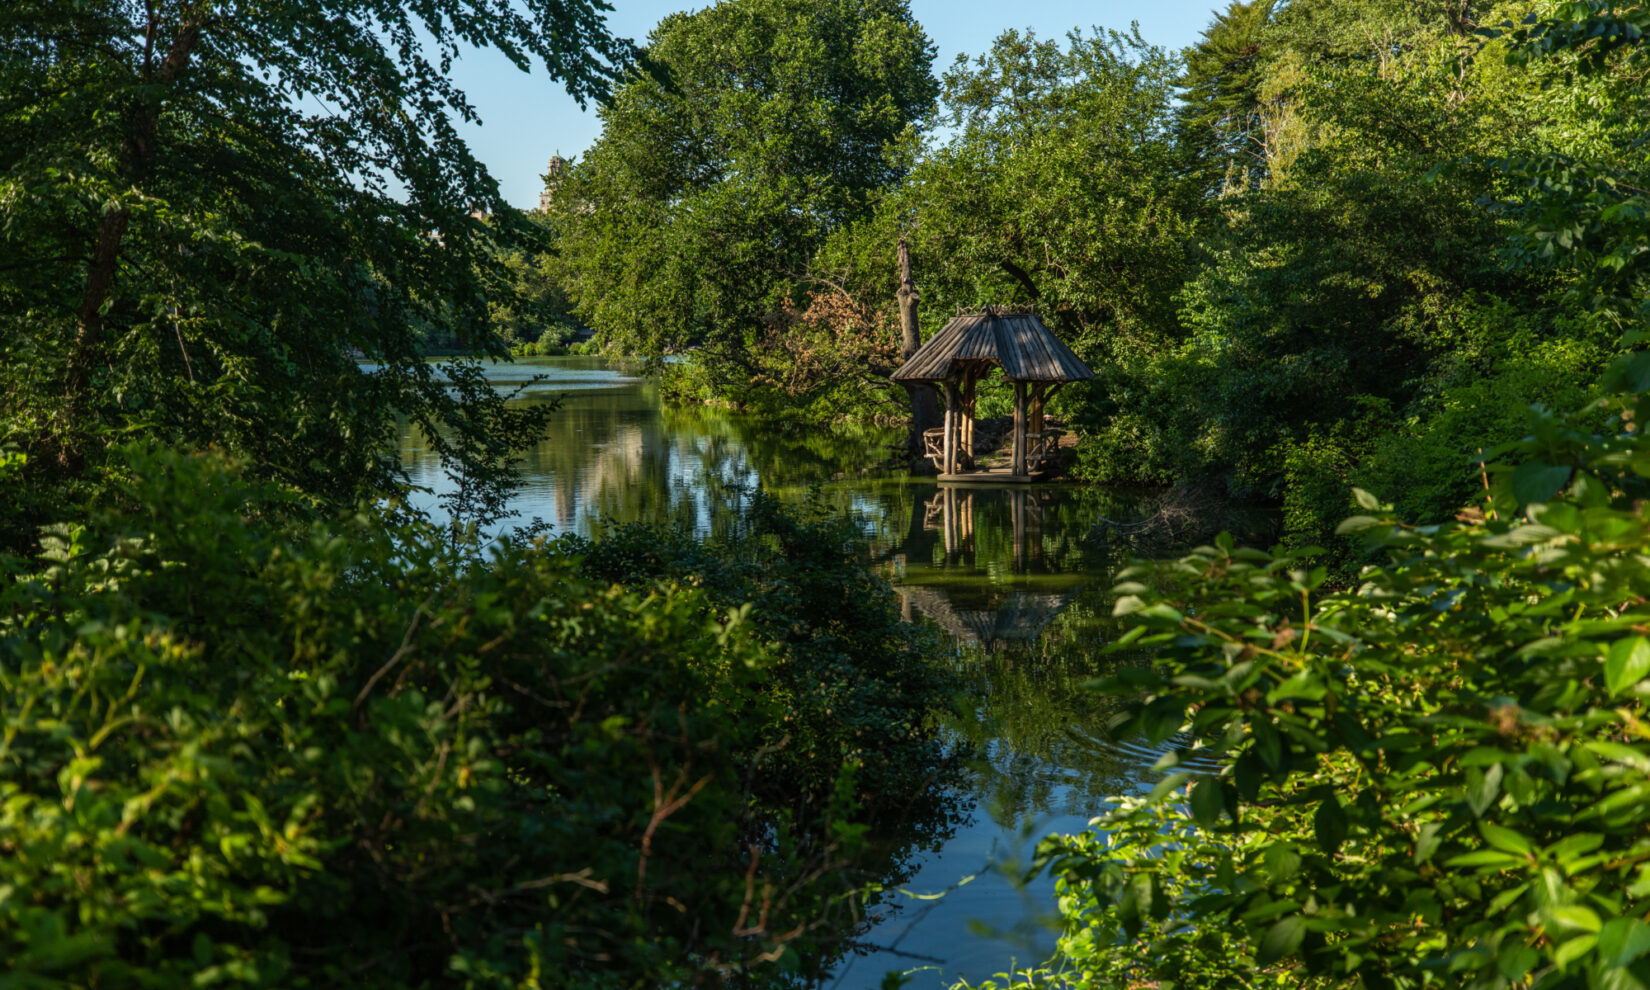 The boat landing is tucked into the shore of dense green flora that surrounds the Lake.